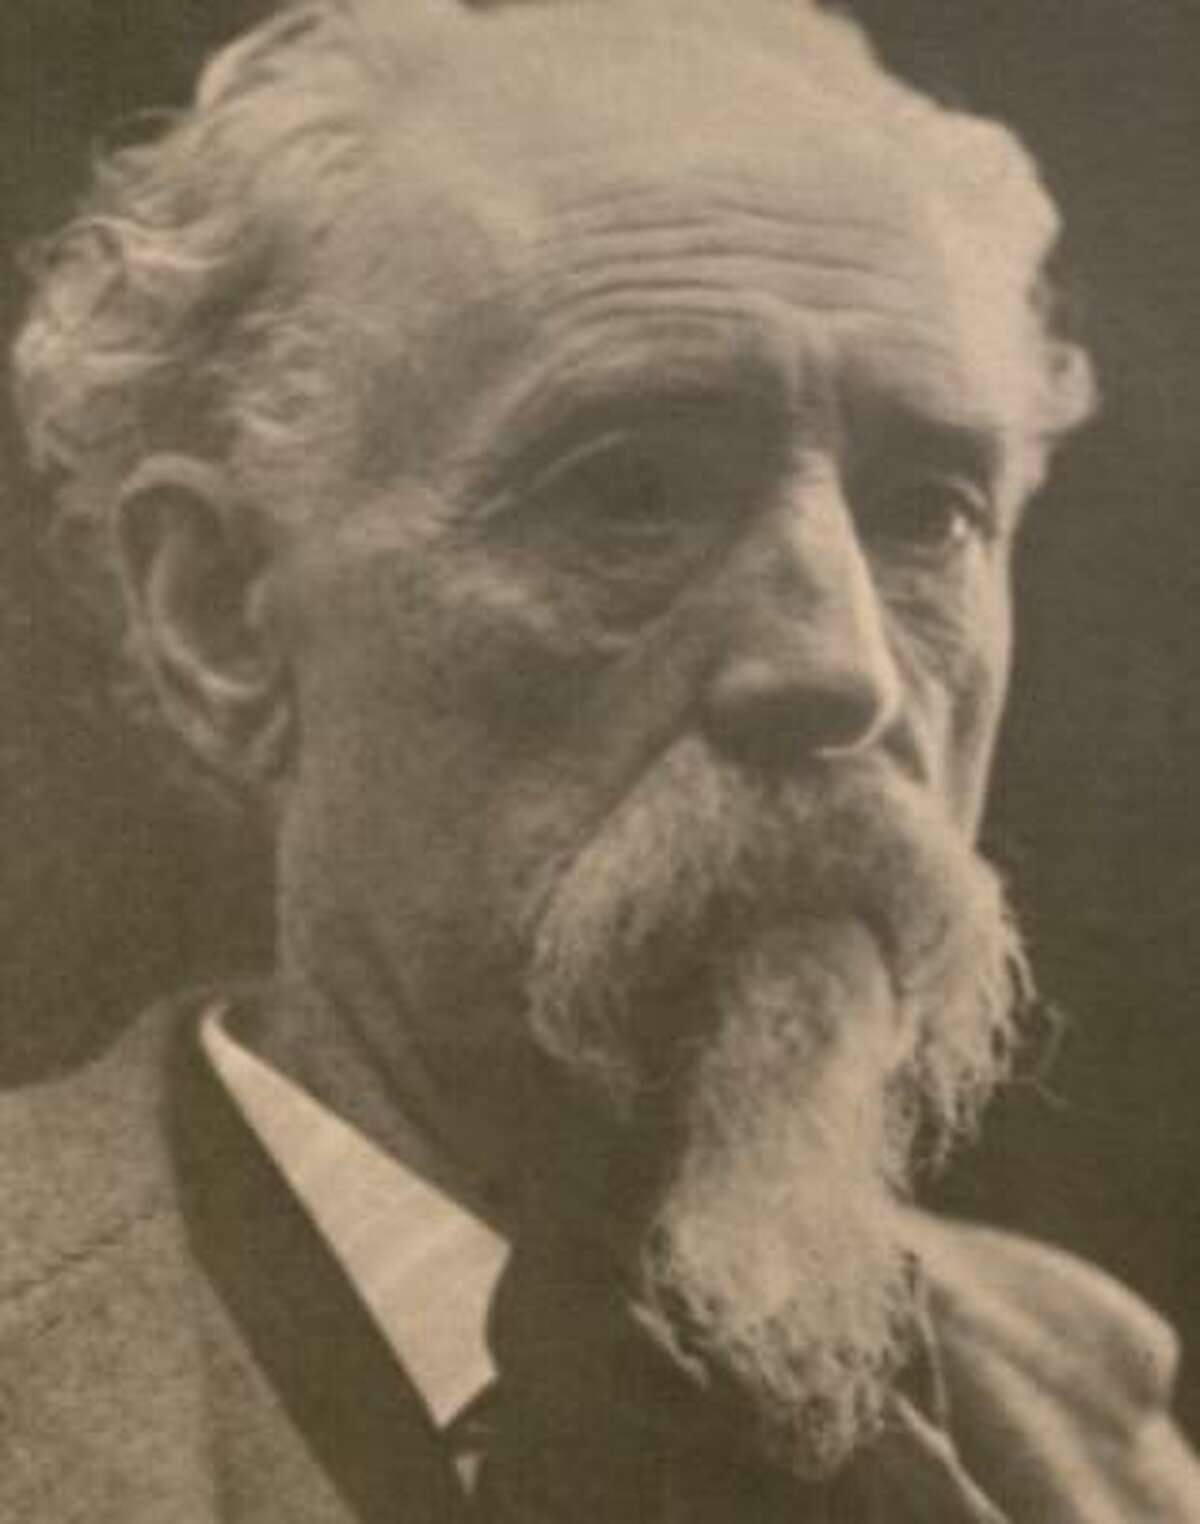 Henry McArdle taught art at a Texas college after making maps for the Confederate Navy in the Civil War.